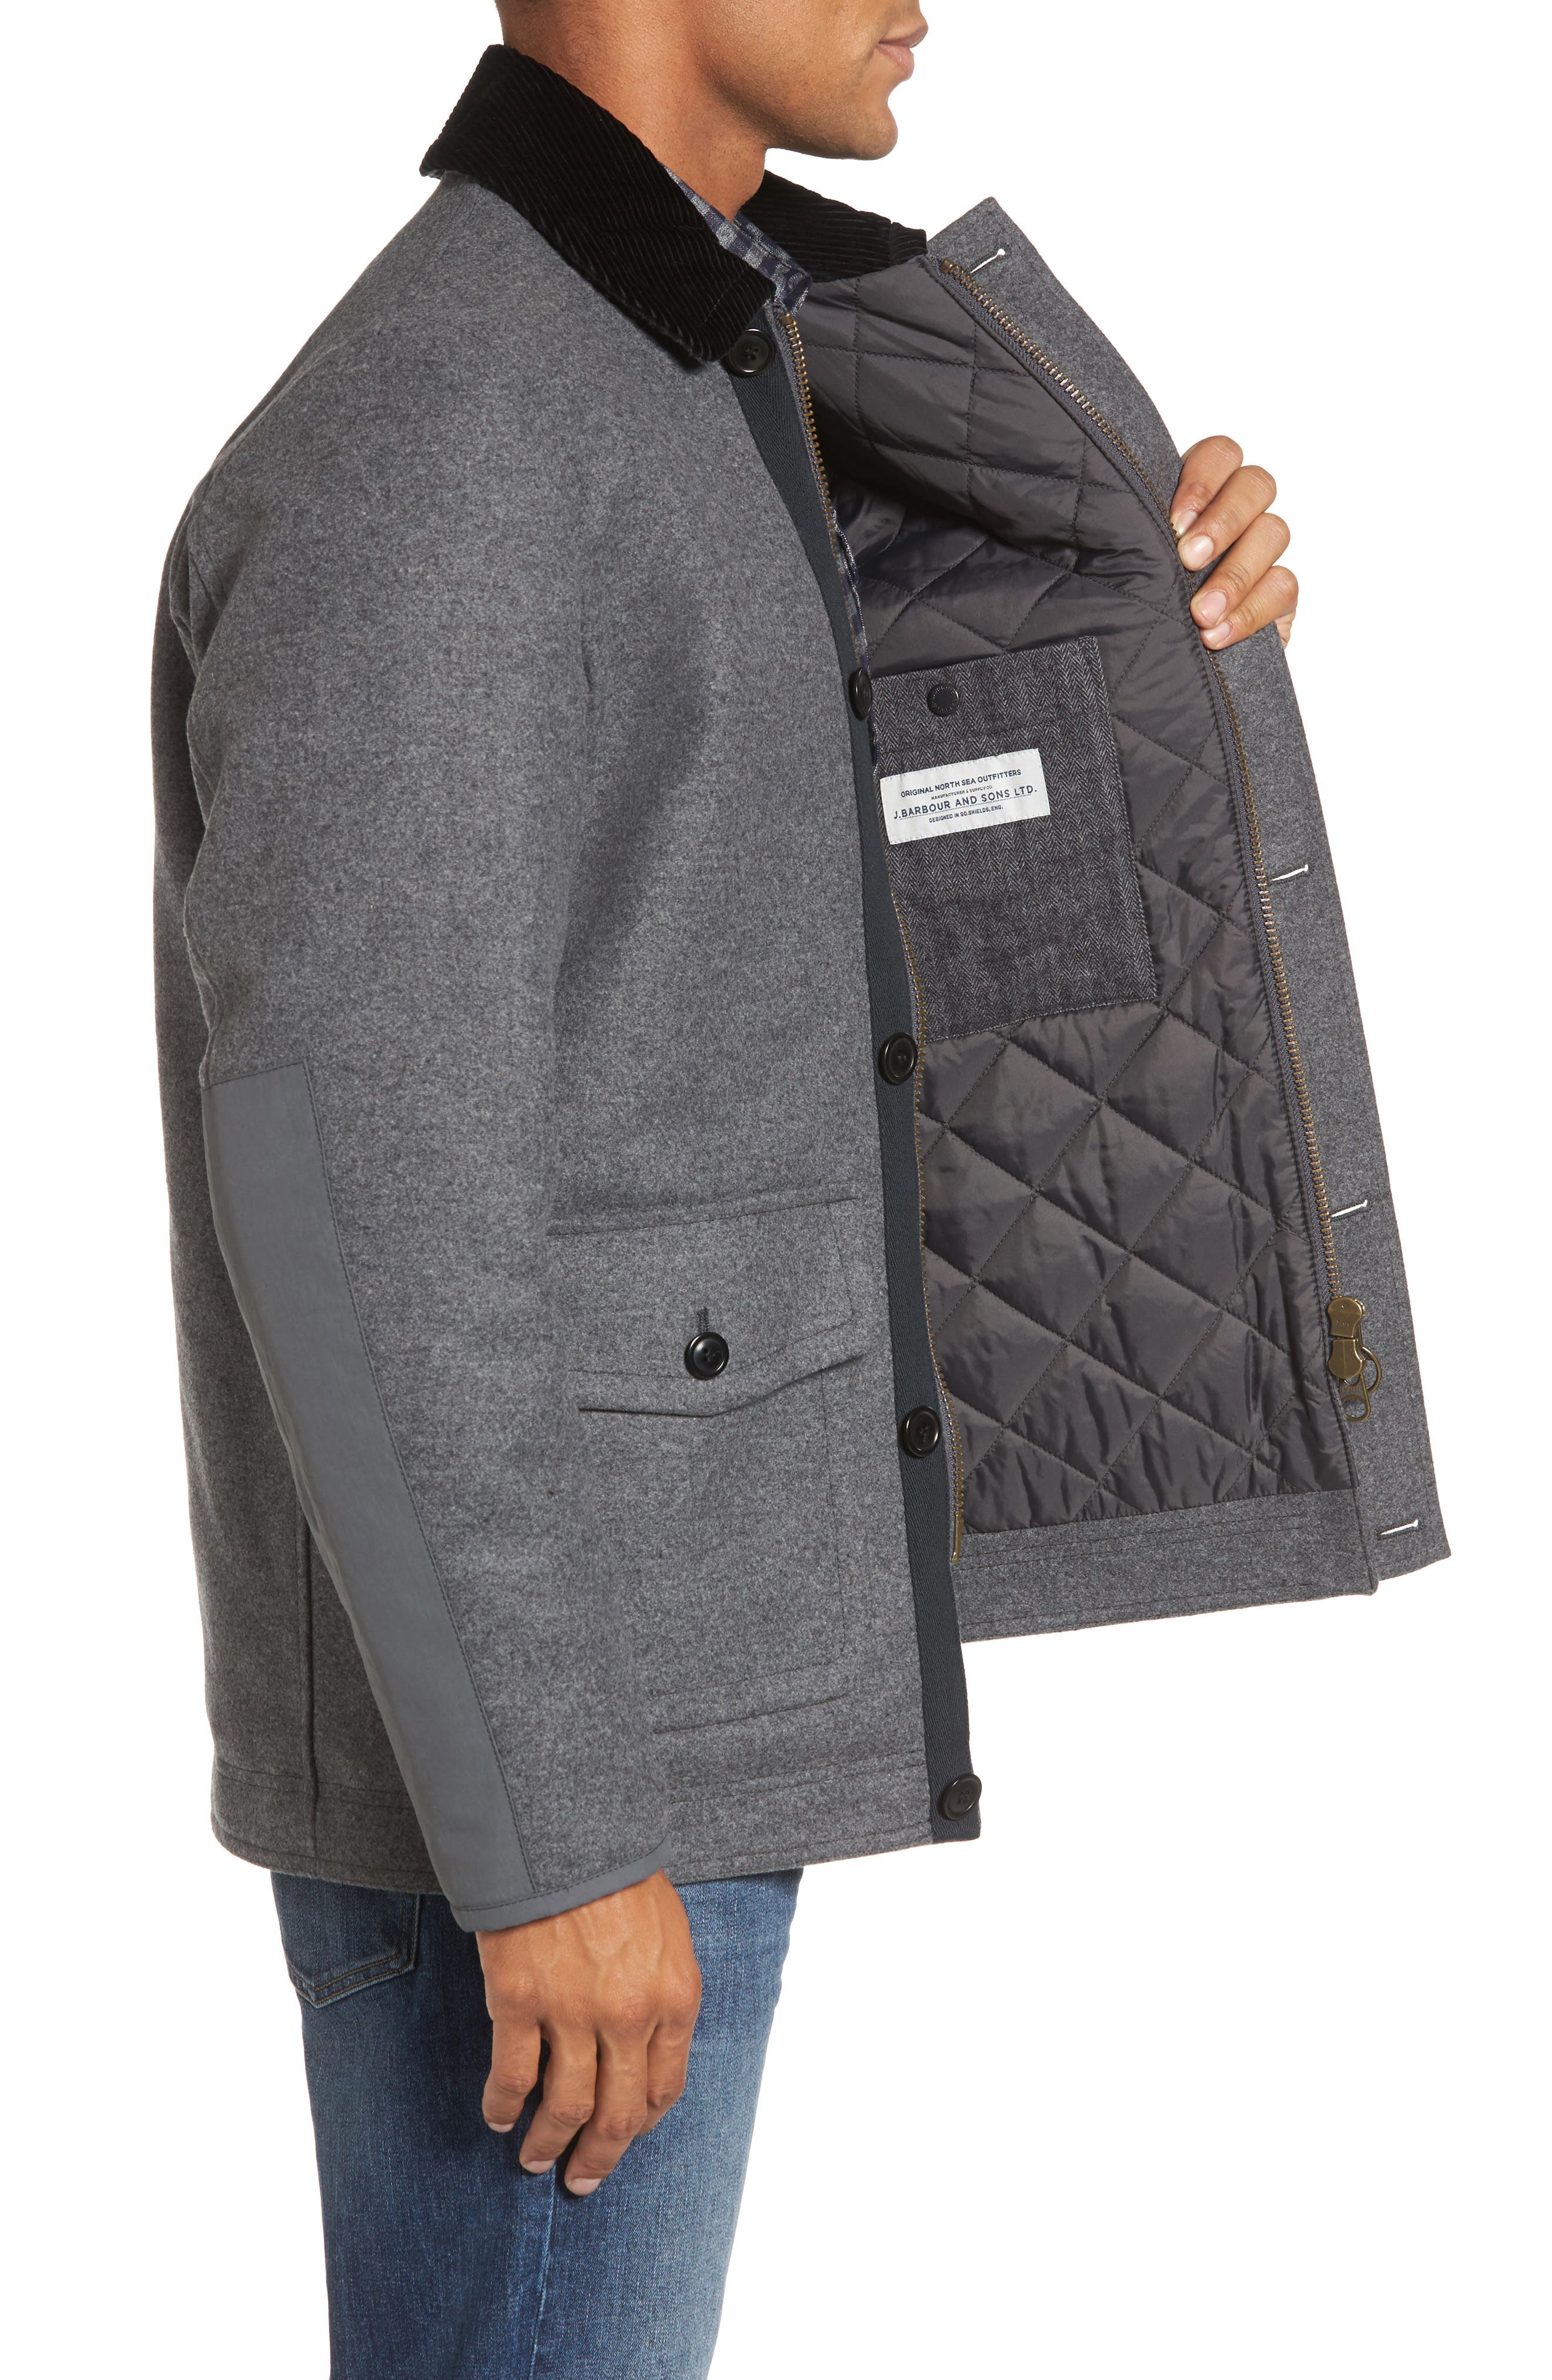 Chingle Wool Blend Deck Jacket,                             Alternate thumbnail 3, color,                             Grey